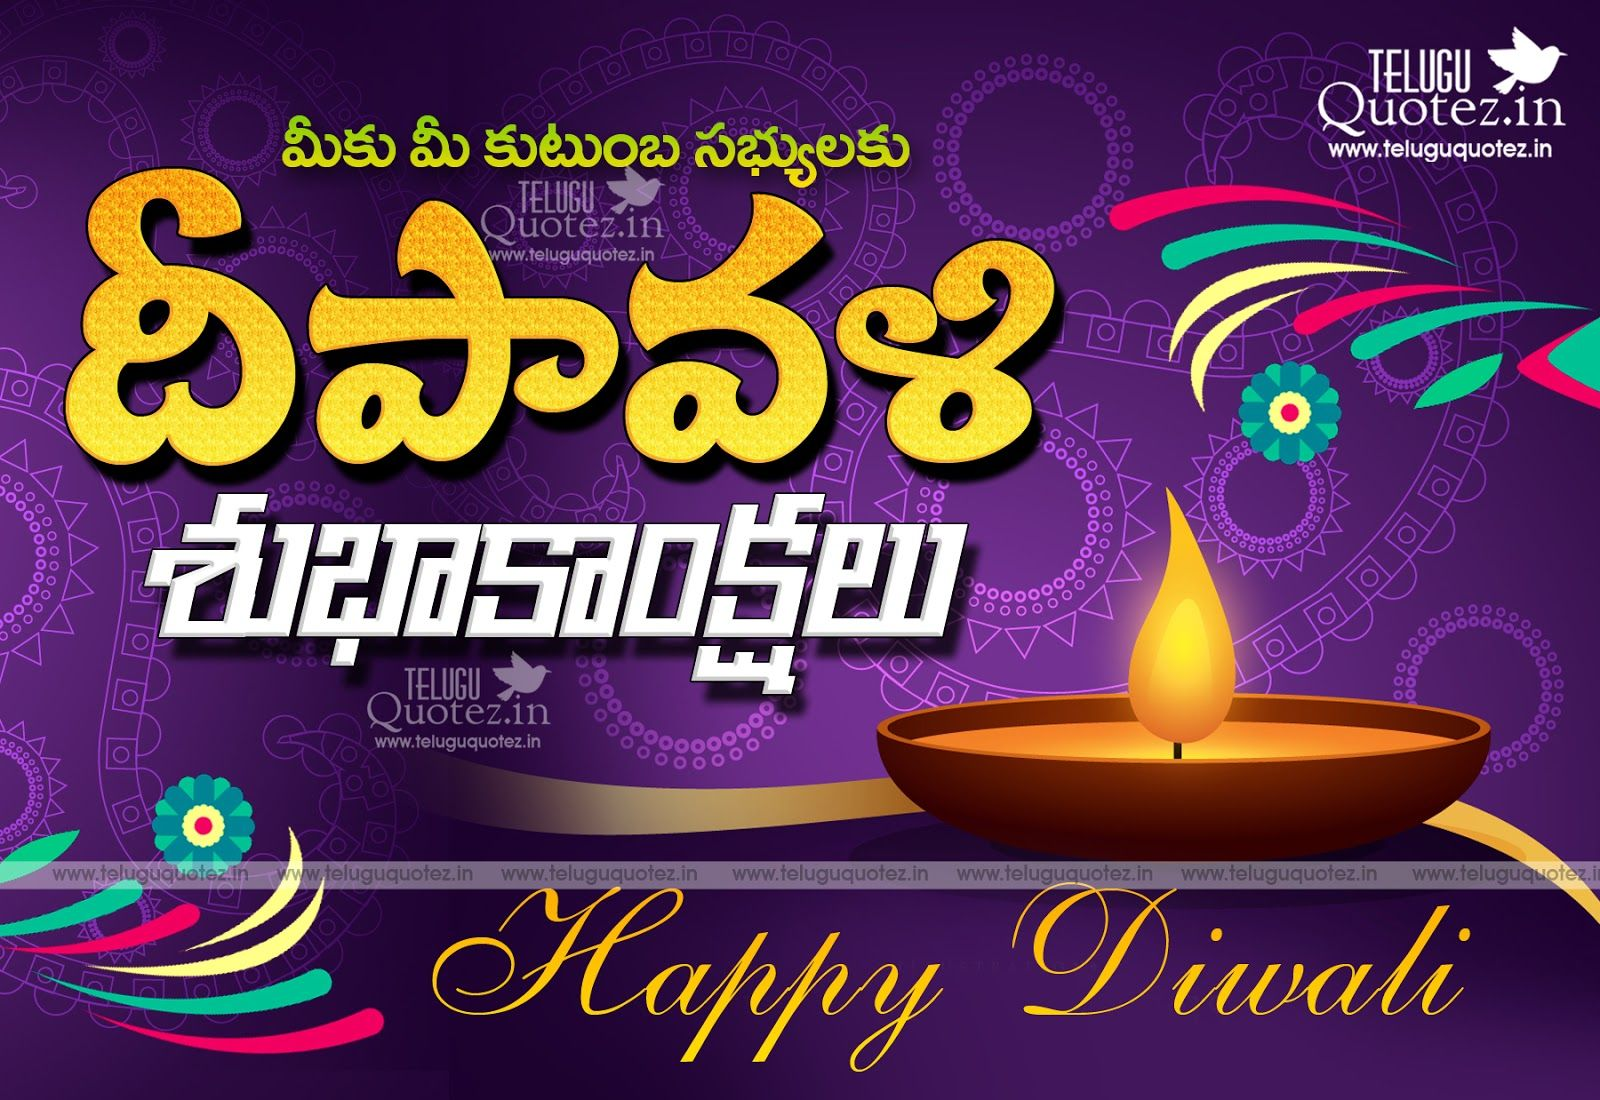 Here is a 2015 deepavali telugu quotes and messages online top here is a 2015 deepavali telugu quotes and messages online top telugu diwali wishes and kristyandbryce Gallery